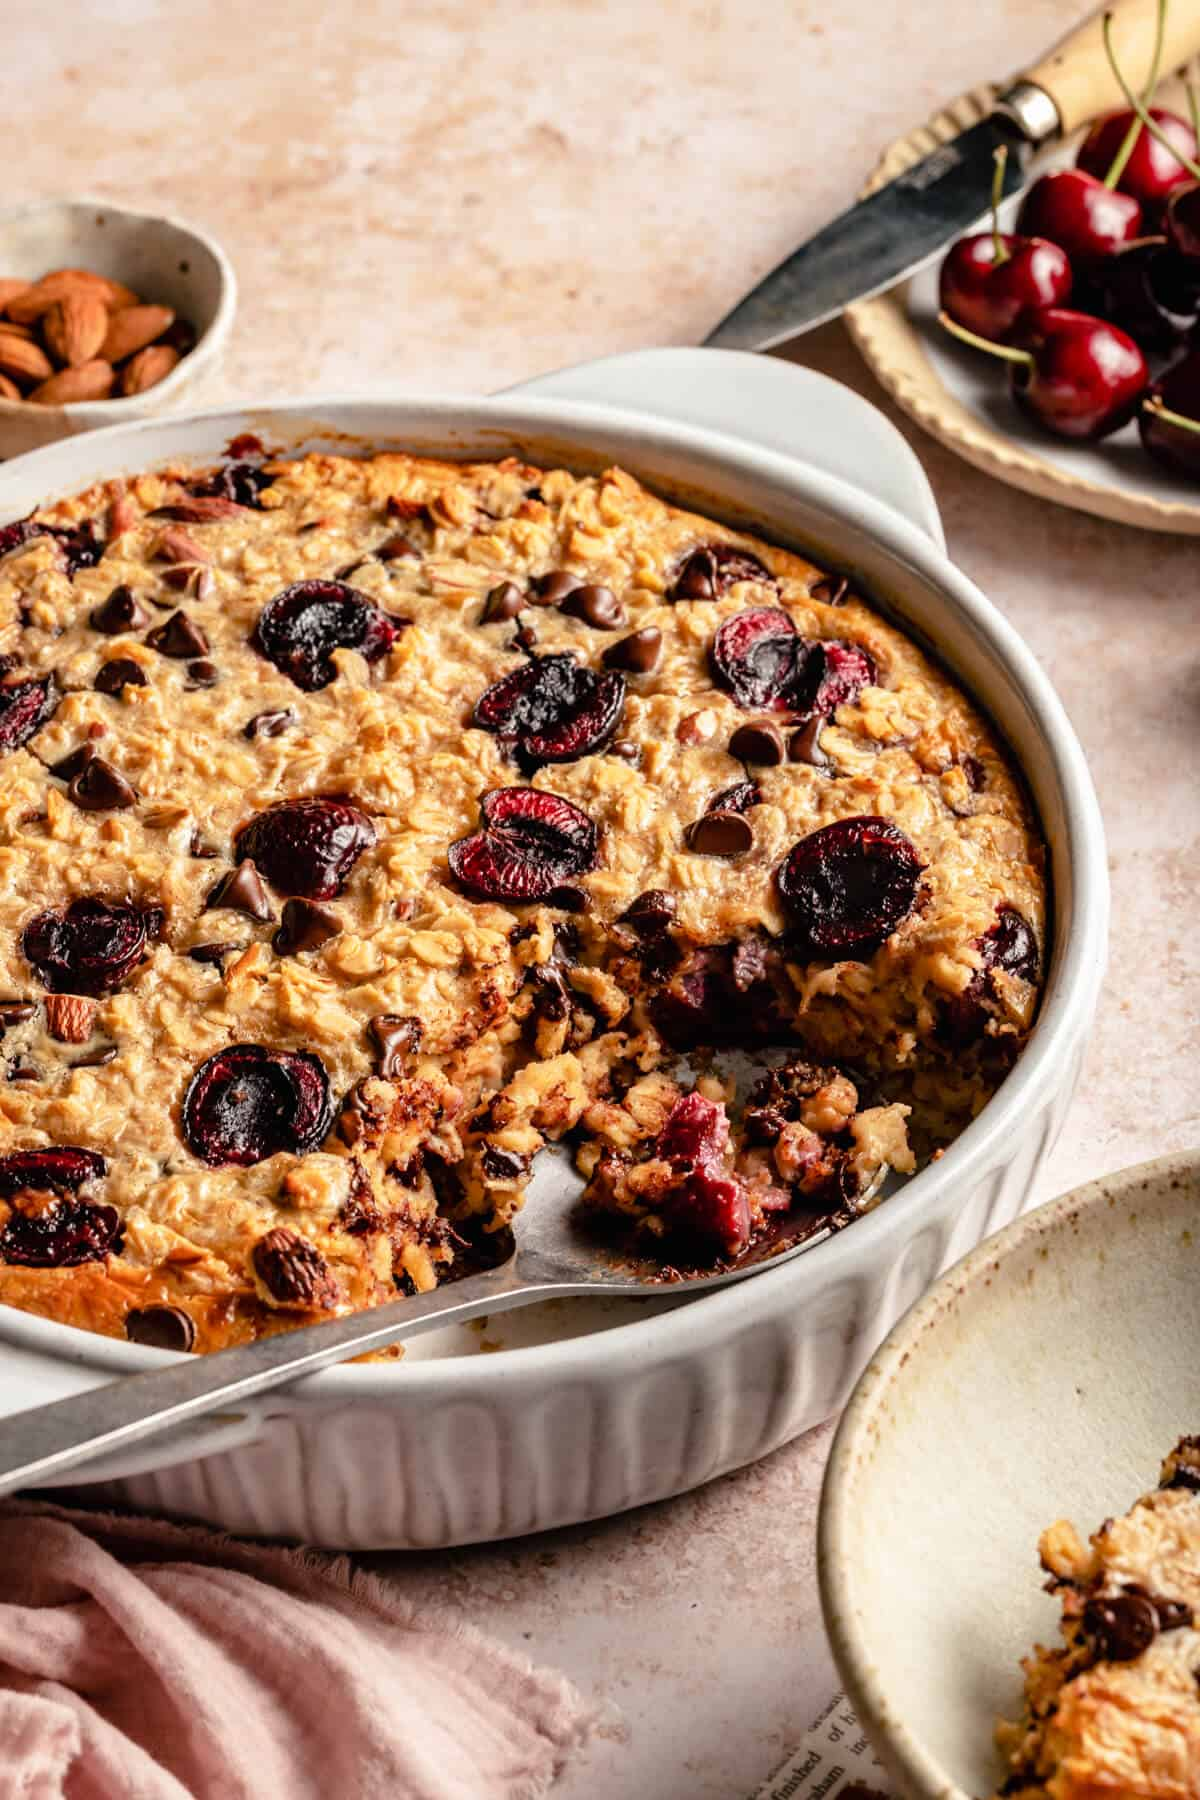 close up of the inside of the baked oatmeal with a serving spoon